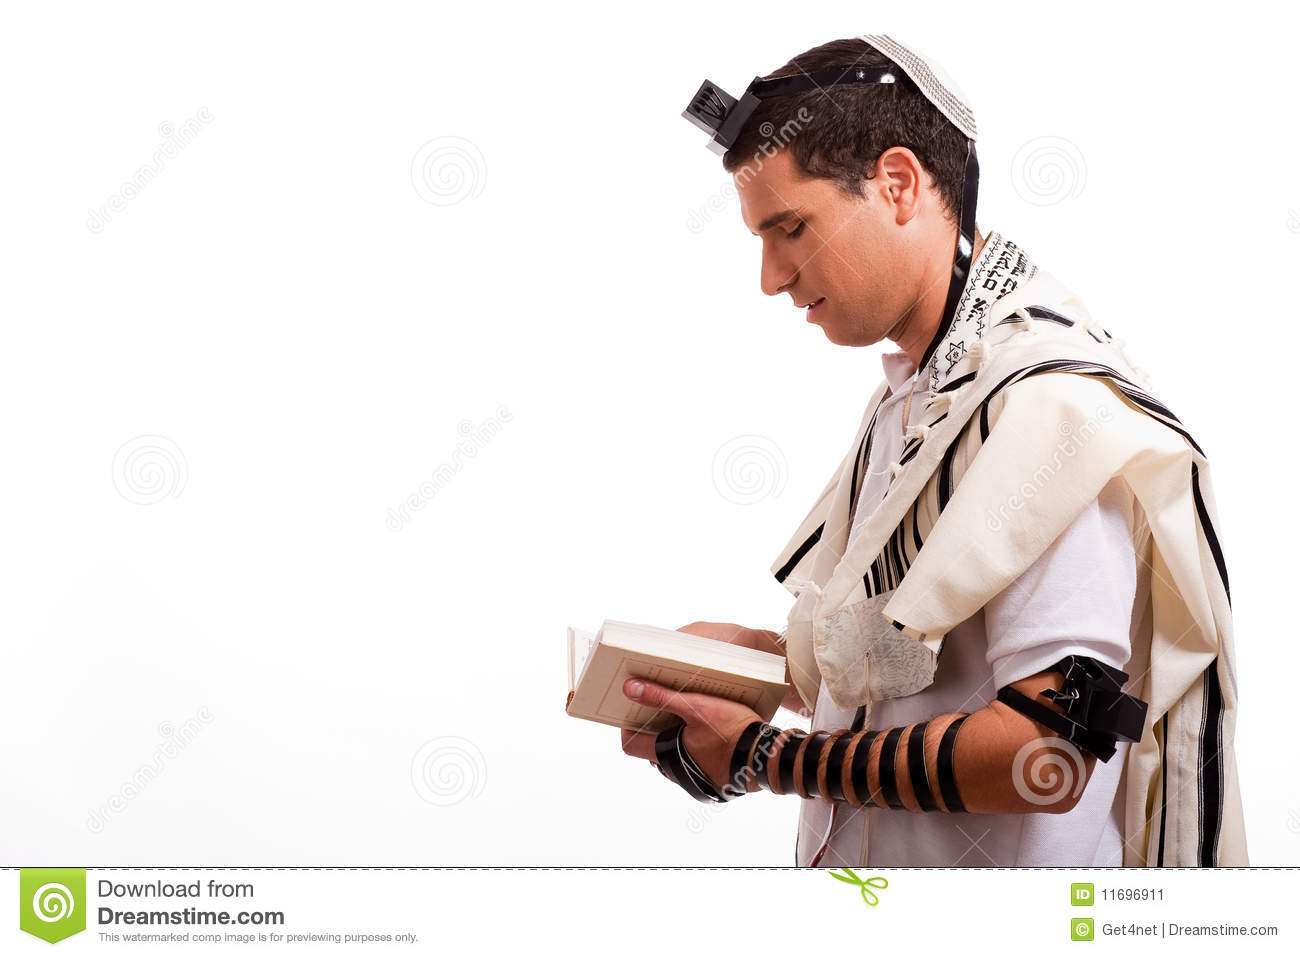 jewish single men in church view Please take my fatherly advice: you are better off single than with the wrong guy.